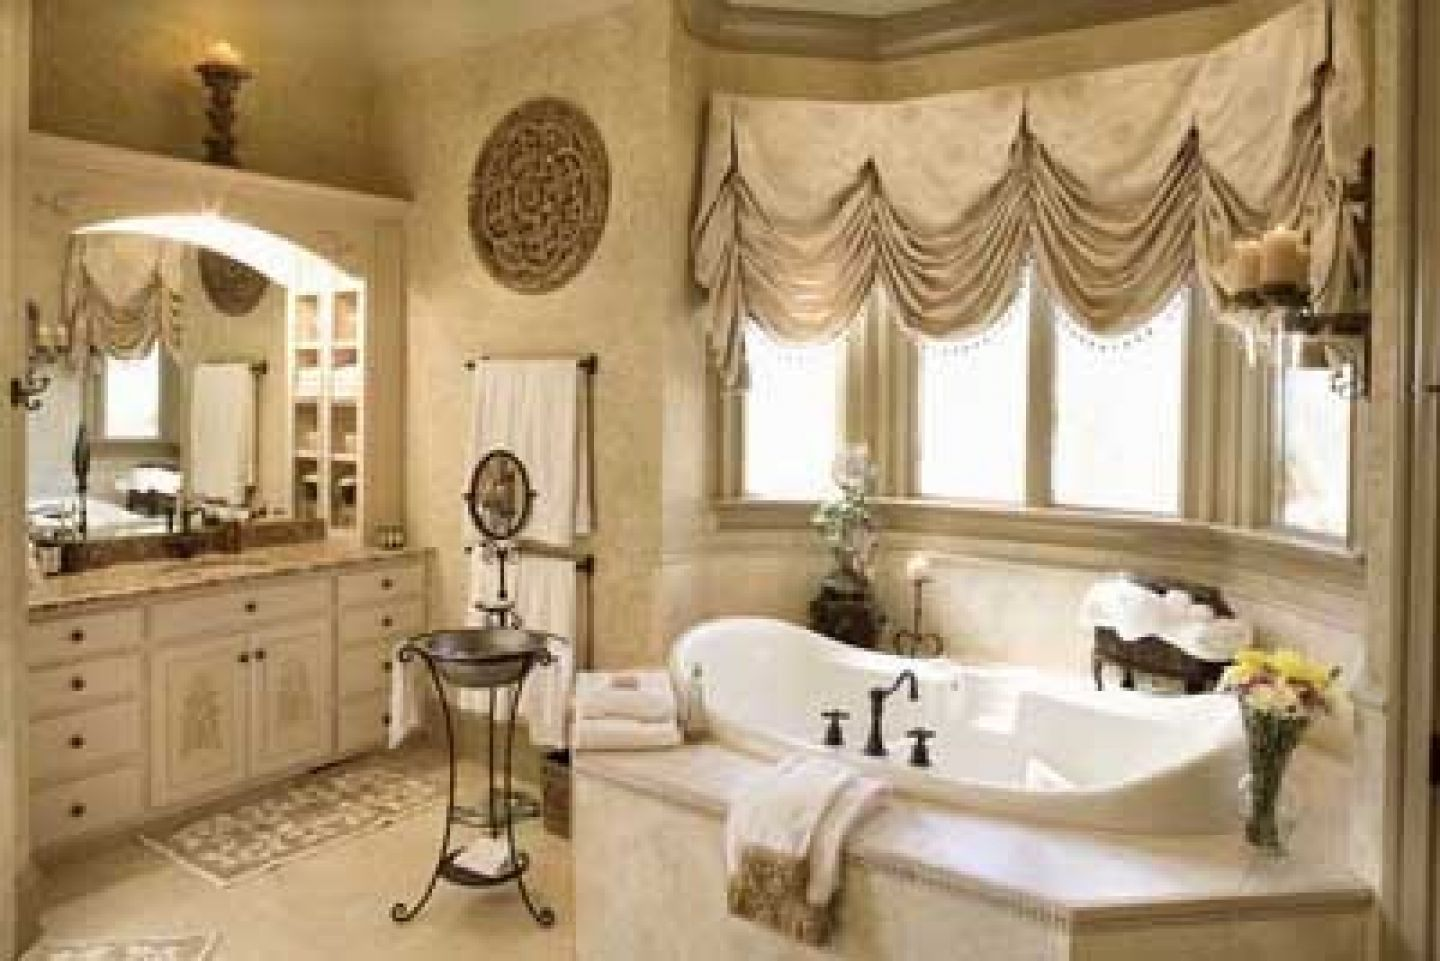 Genial Luxury Bathroom With Well Treated Windows Featuring Curtain Valance With  Elegant Color